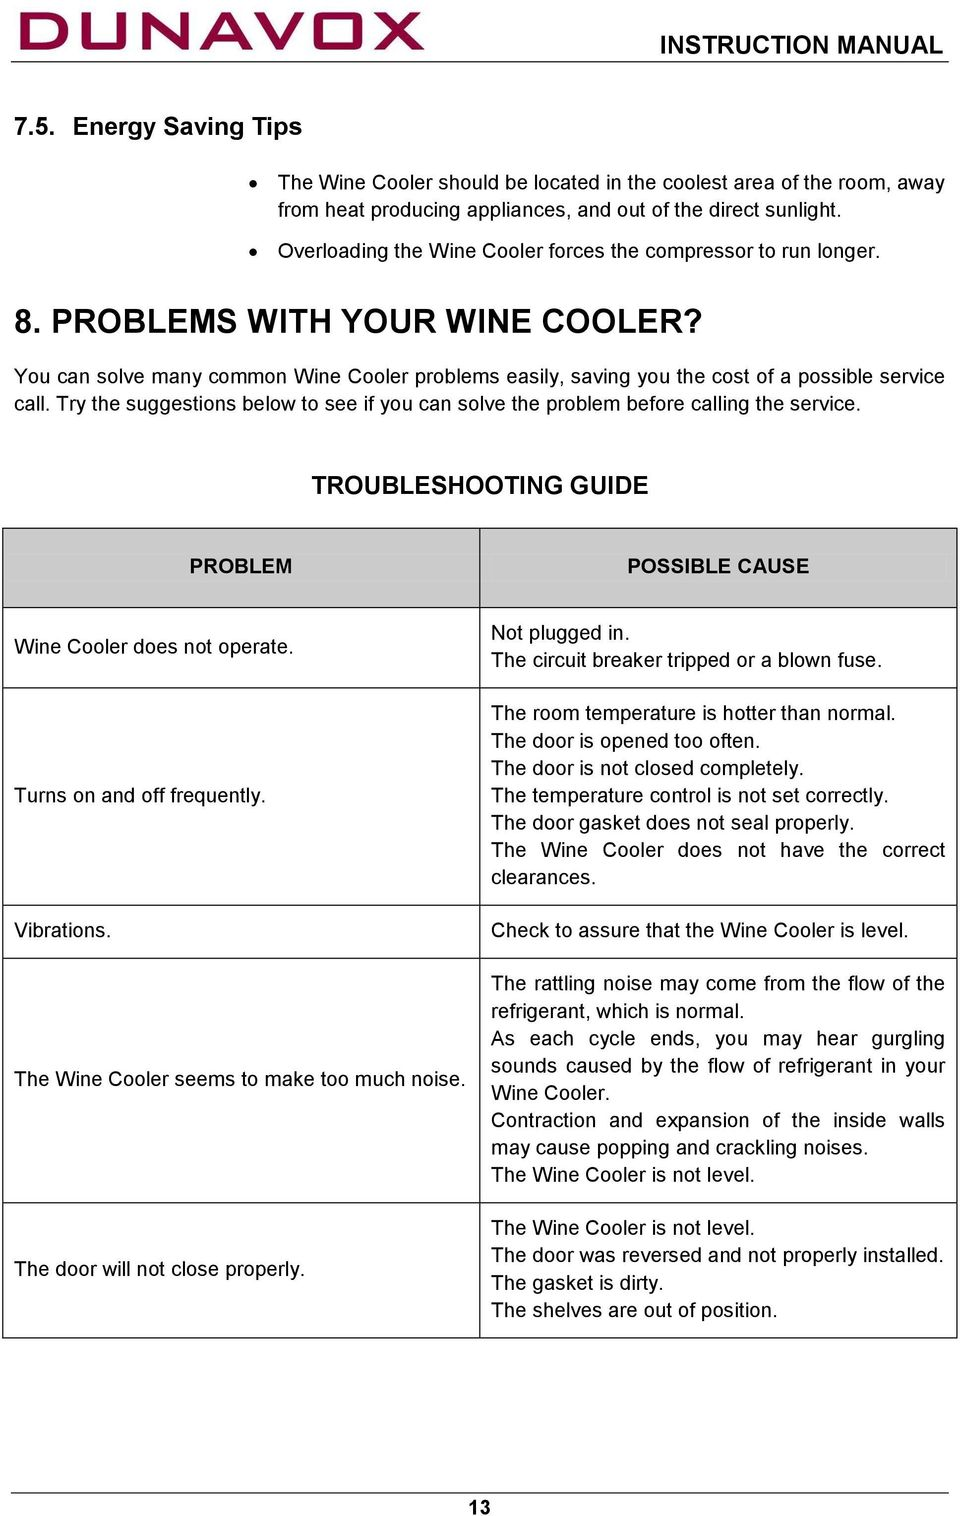 You can solve many common Wine Cooler problems easily, saving you the cost of a possible service call. Try the suggestions below to see if you can solve the problem before calling the service.